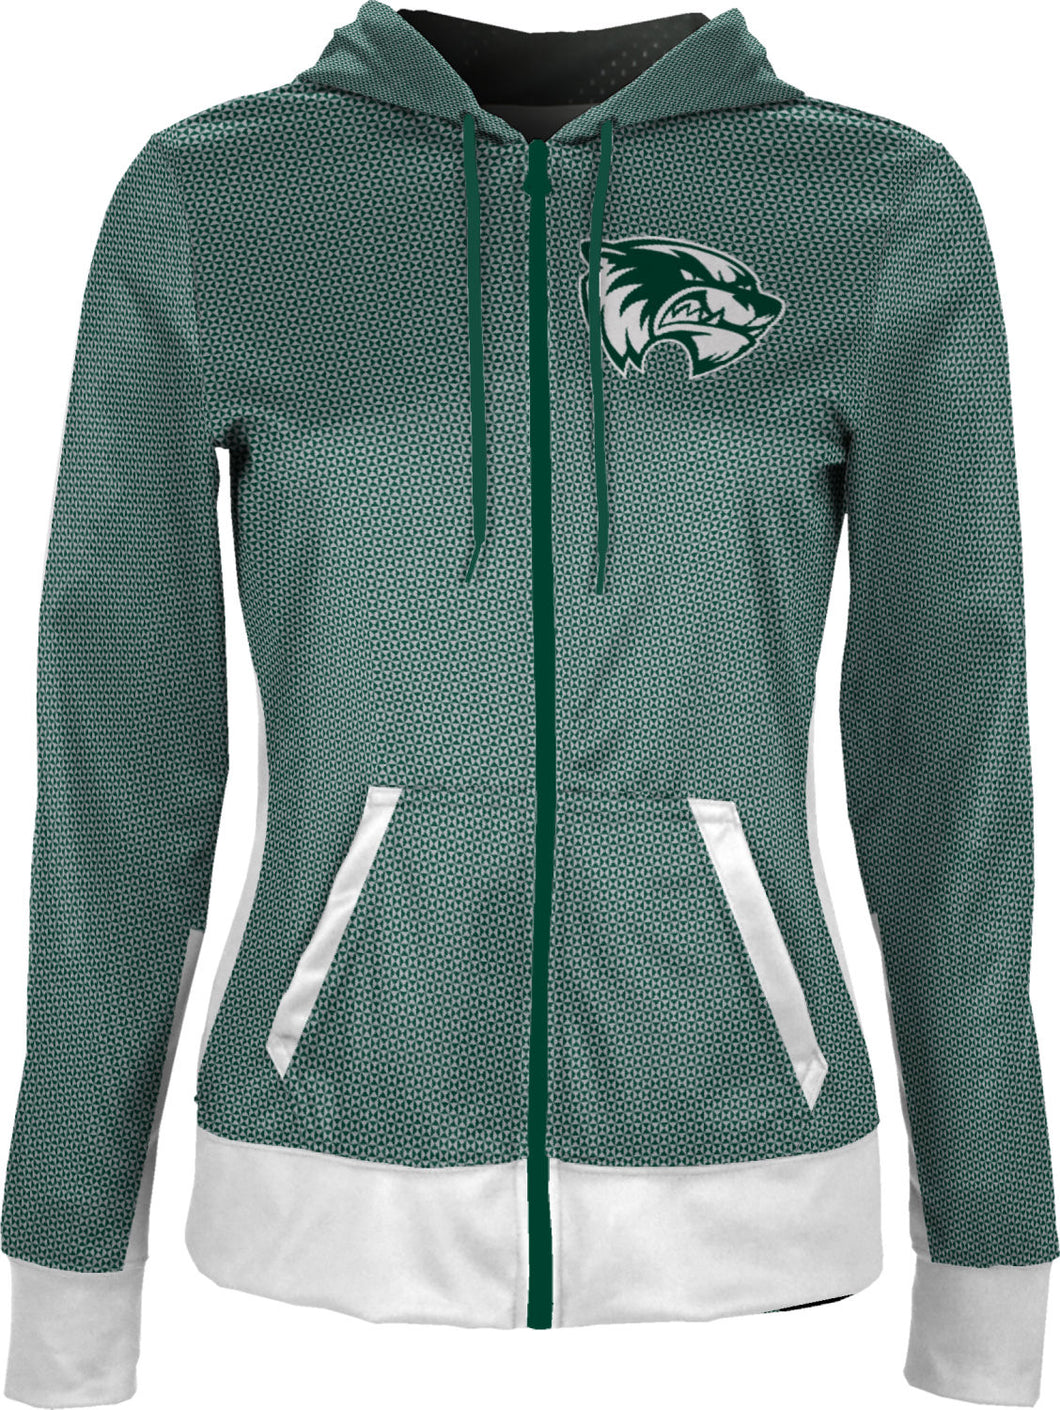 Utah Valley University: Girls' Full Zip Hoodie - Embrace